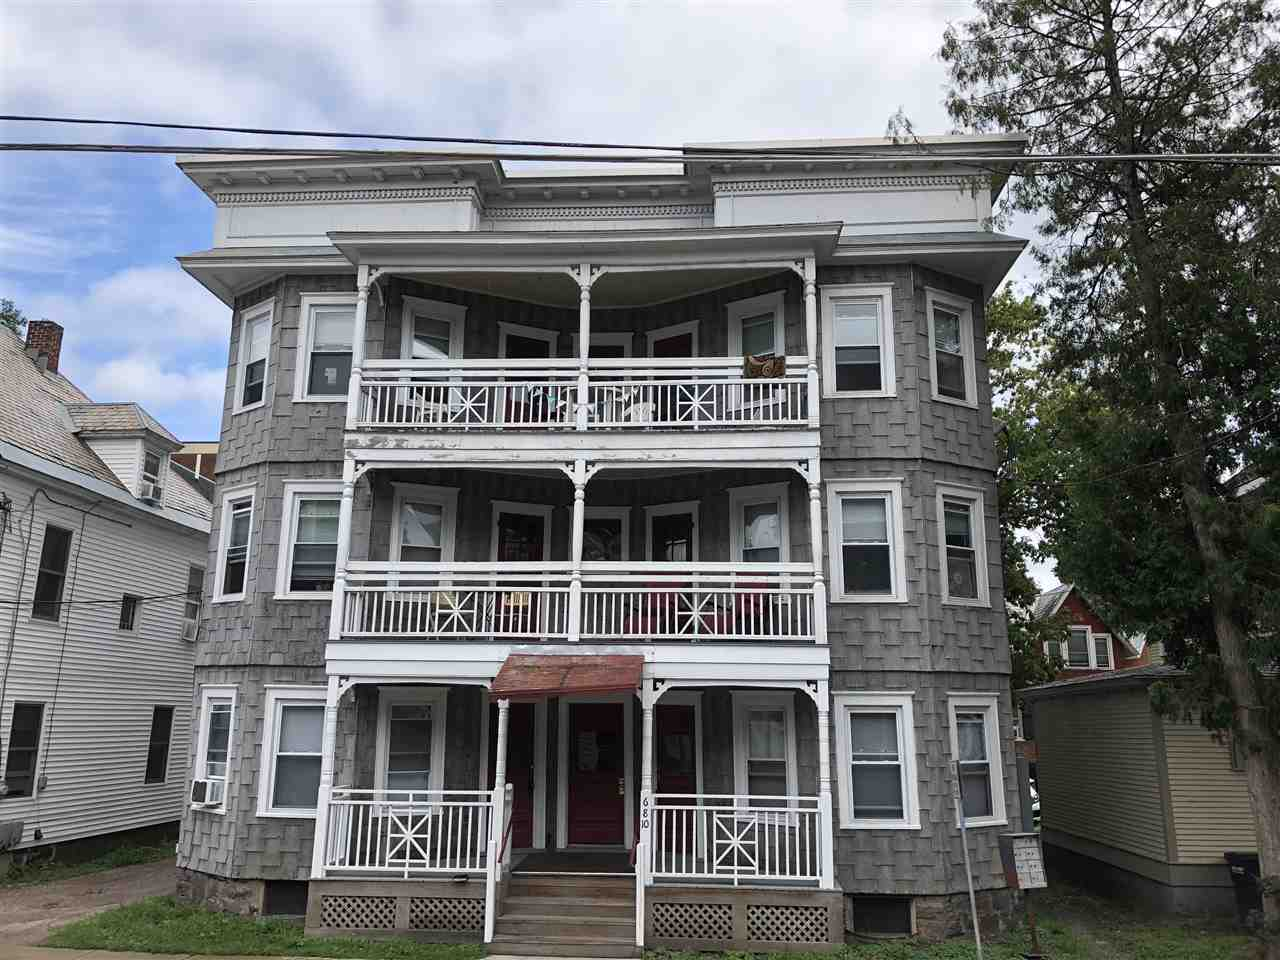 Located in the heart of Burlington, Vermont this 6 unit apartment is a great investment opportunity.  Greene Street is an ideal location, perfect for undergrad and graduate students attending the University of Vermont or Champlain College and young professionals working in the greater Burlington area and surrounding communities.  Sited on a residential street, this 3-story house offers six 3-bedroom apartments for rent.  All apartments include spacious living rooms, plenty of outdoor living space, and large bedrooms.  Well maintained by the current owner, this is a turn-key income generating property. Each unit is separately metered with laundry in basement for added income. 0% vacancy rate since 2013.